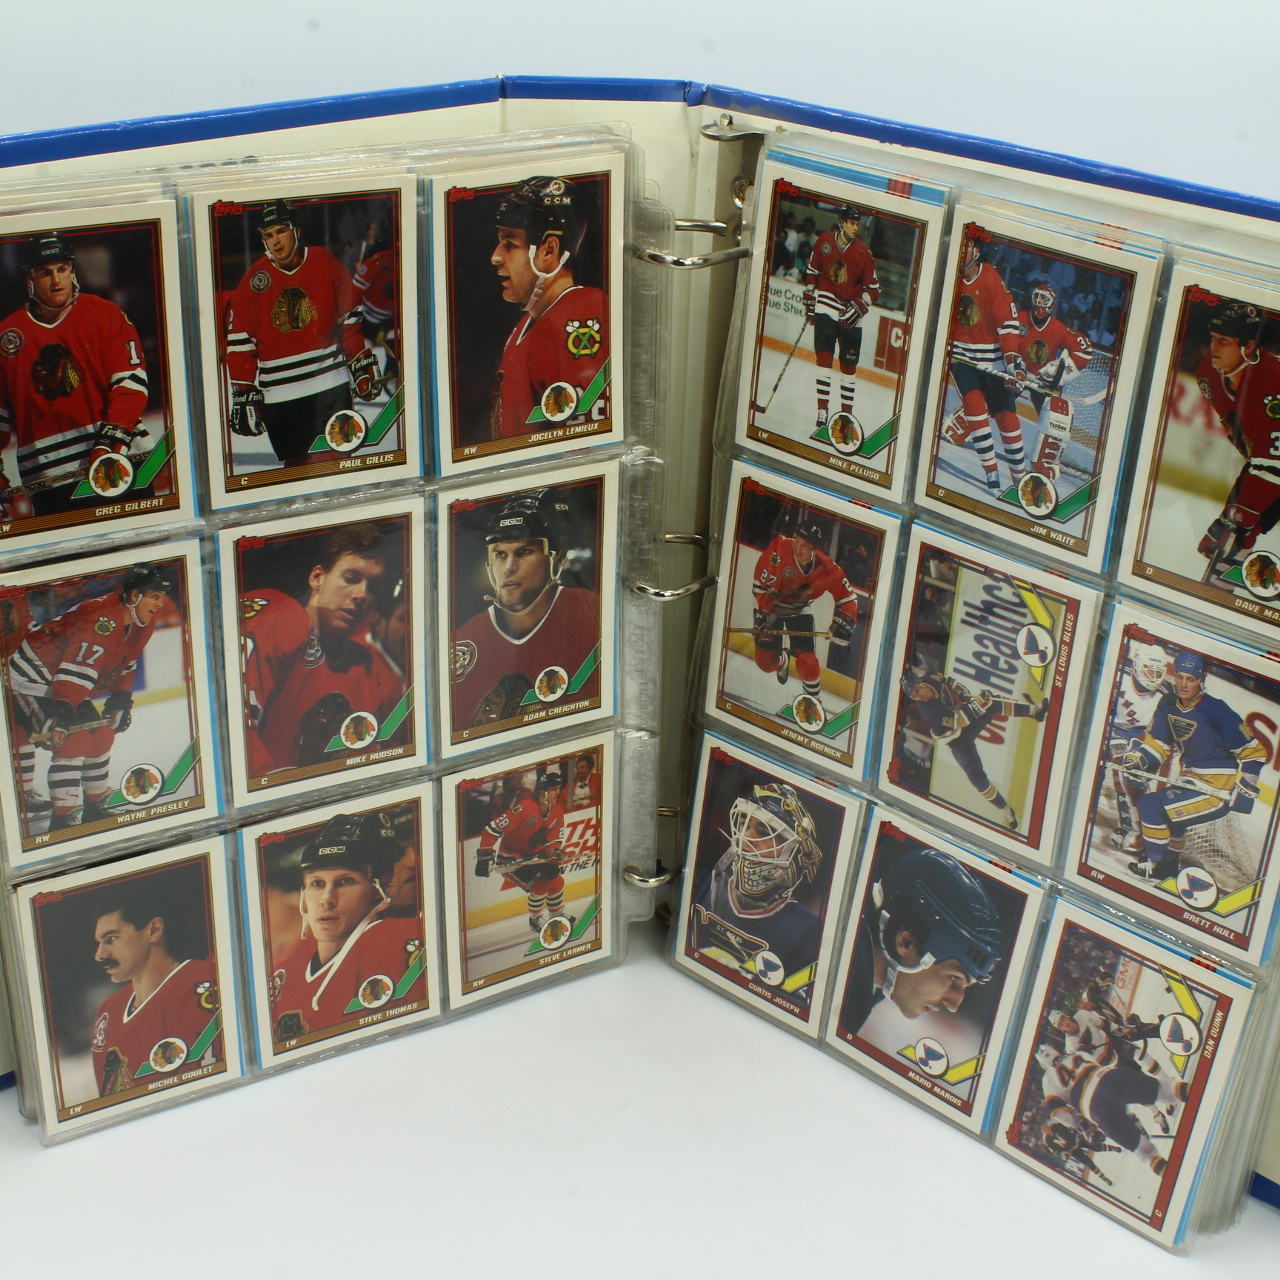 Cards, 1991 Topps NHL Hockey Album Appx 500 Cards